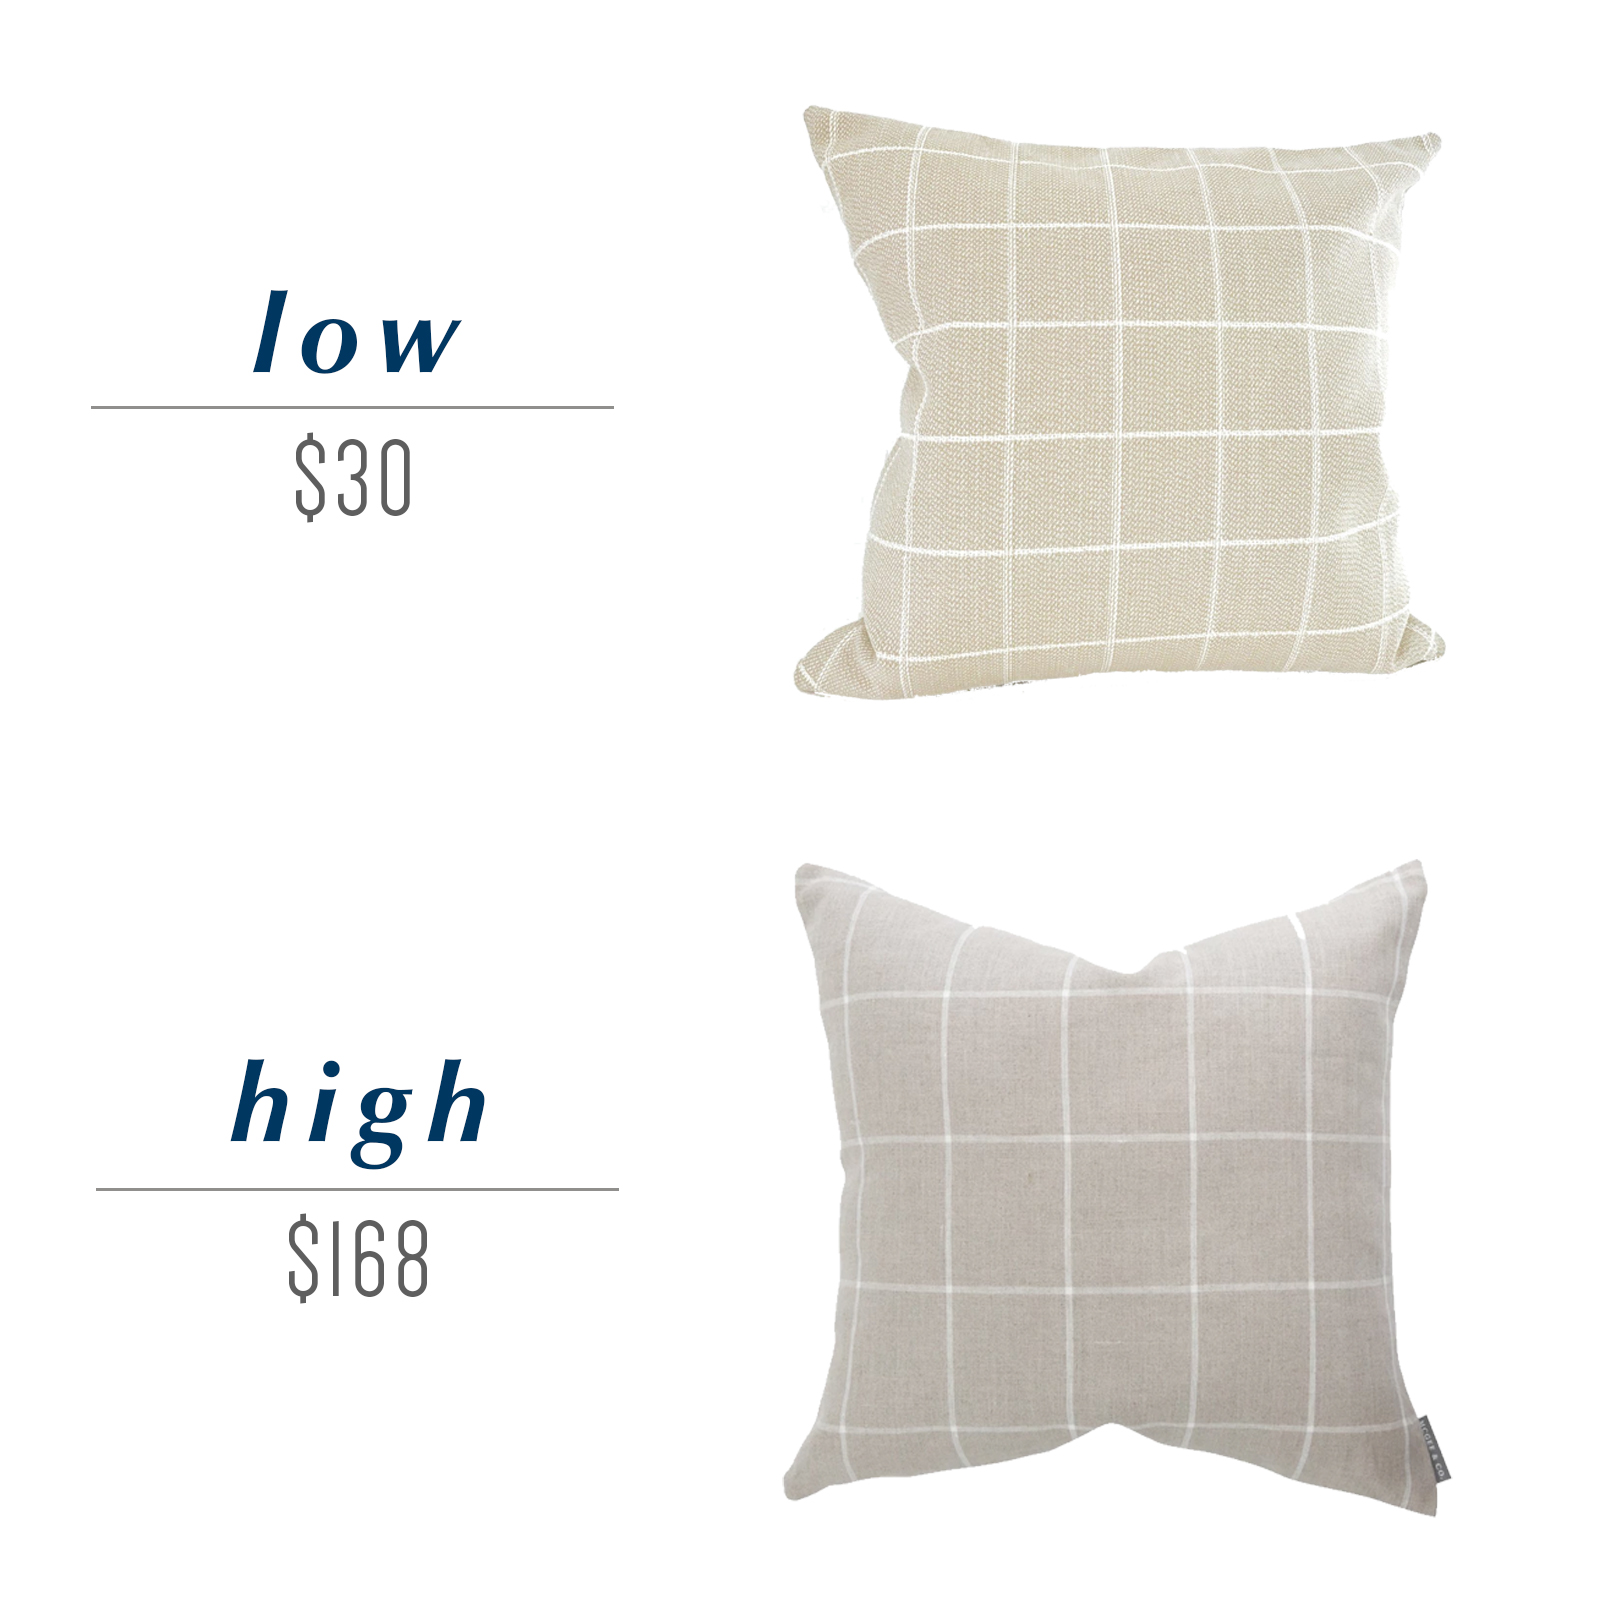 Get the look for less or decide to splurge! Come see the budget-friendly and spend-worthy pieces of furniture in this blog post including the high/low sources for these neutral windowpane pillow covers!